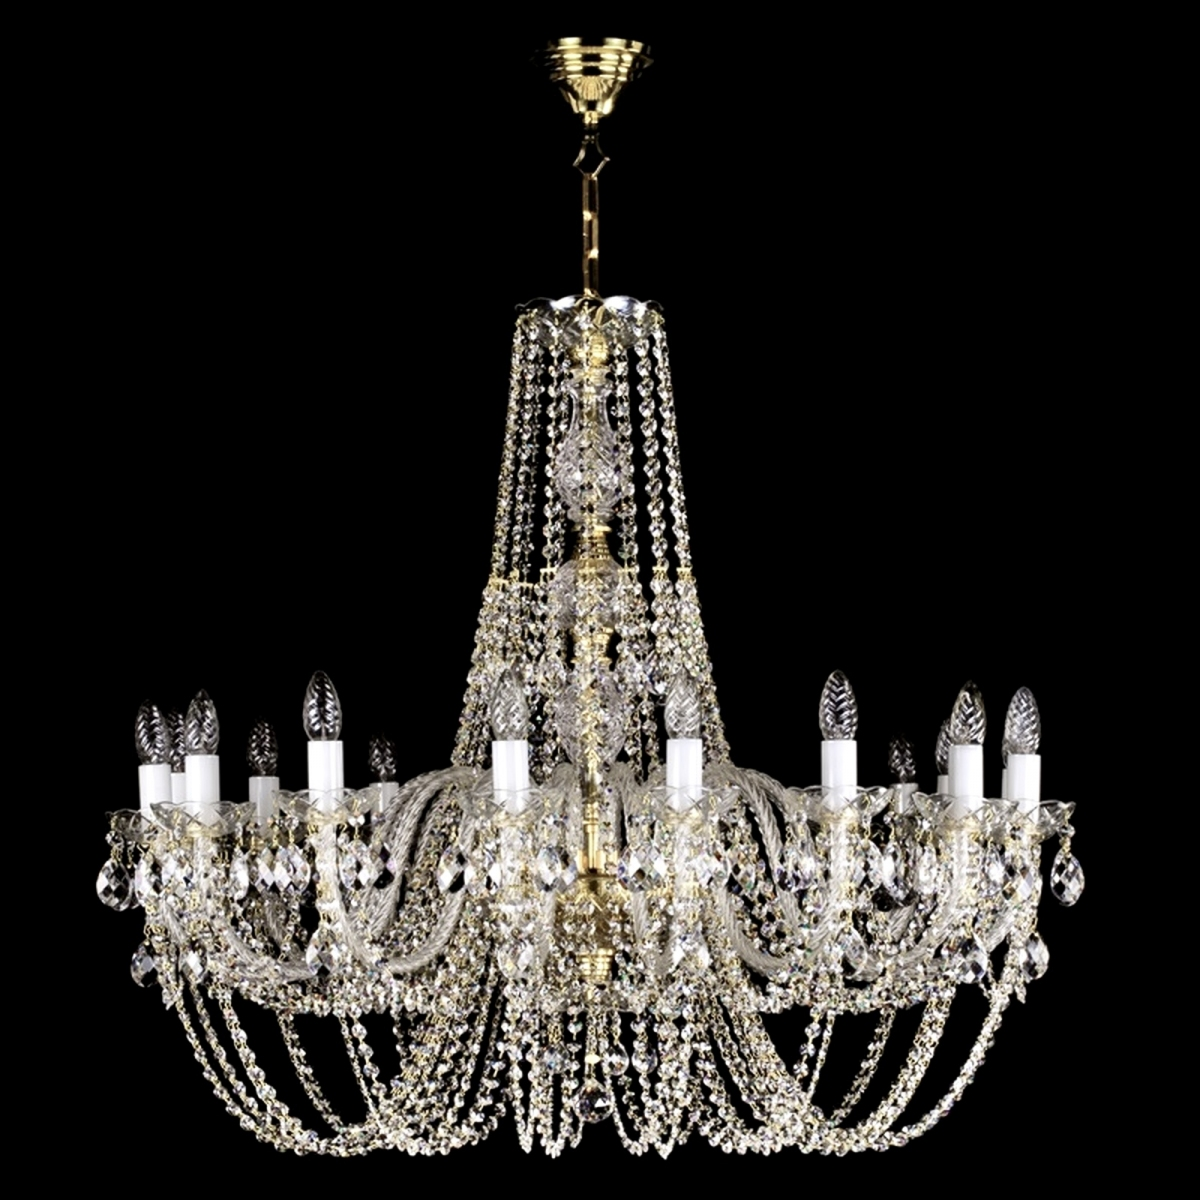 dsc crystals of id tiers l crystal italian staggered f large five venini are chandelier by modern pendant lighting furniture chandeliers italy camer there lights